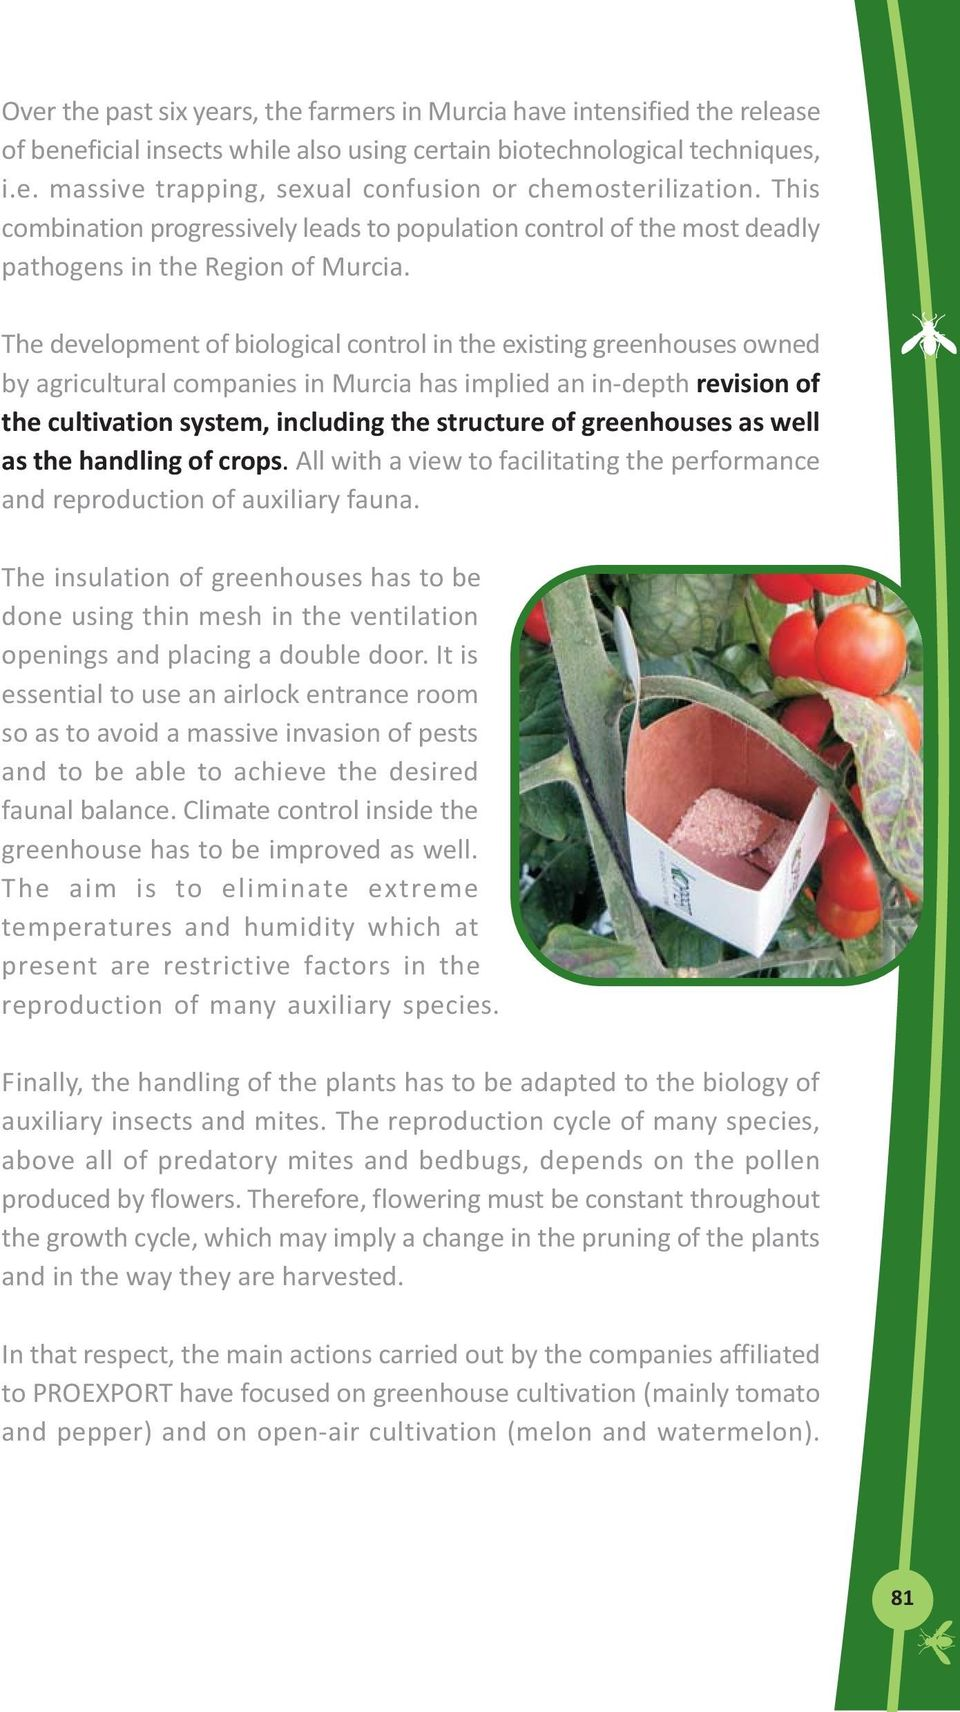 The development of biological control in the existing greenhouses owned by agricultural companies in Murcia has implied an in-depth revision of the cultivation system, including the structure of